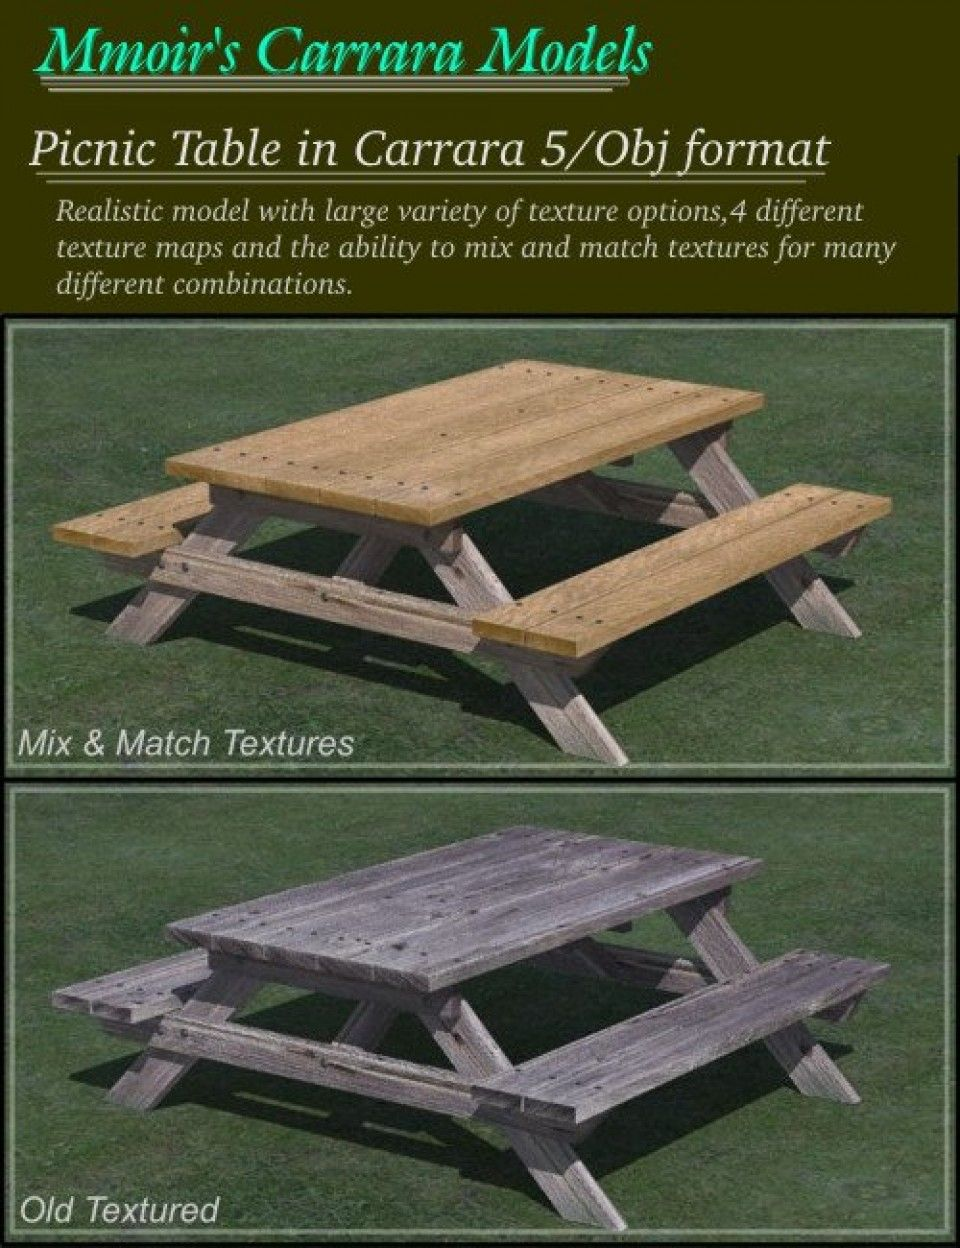 Picnic Table And Fire Pit Grille DazD Things Pinterest Picnic - Fire picnic table